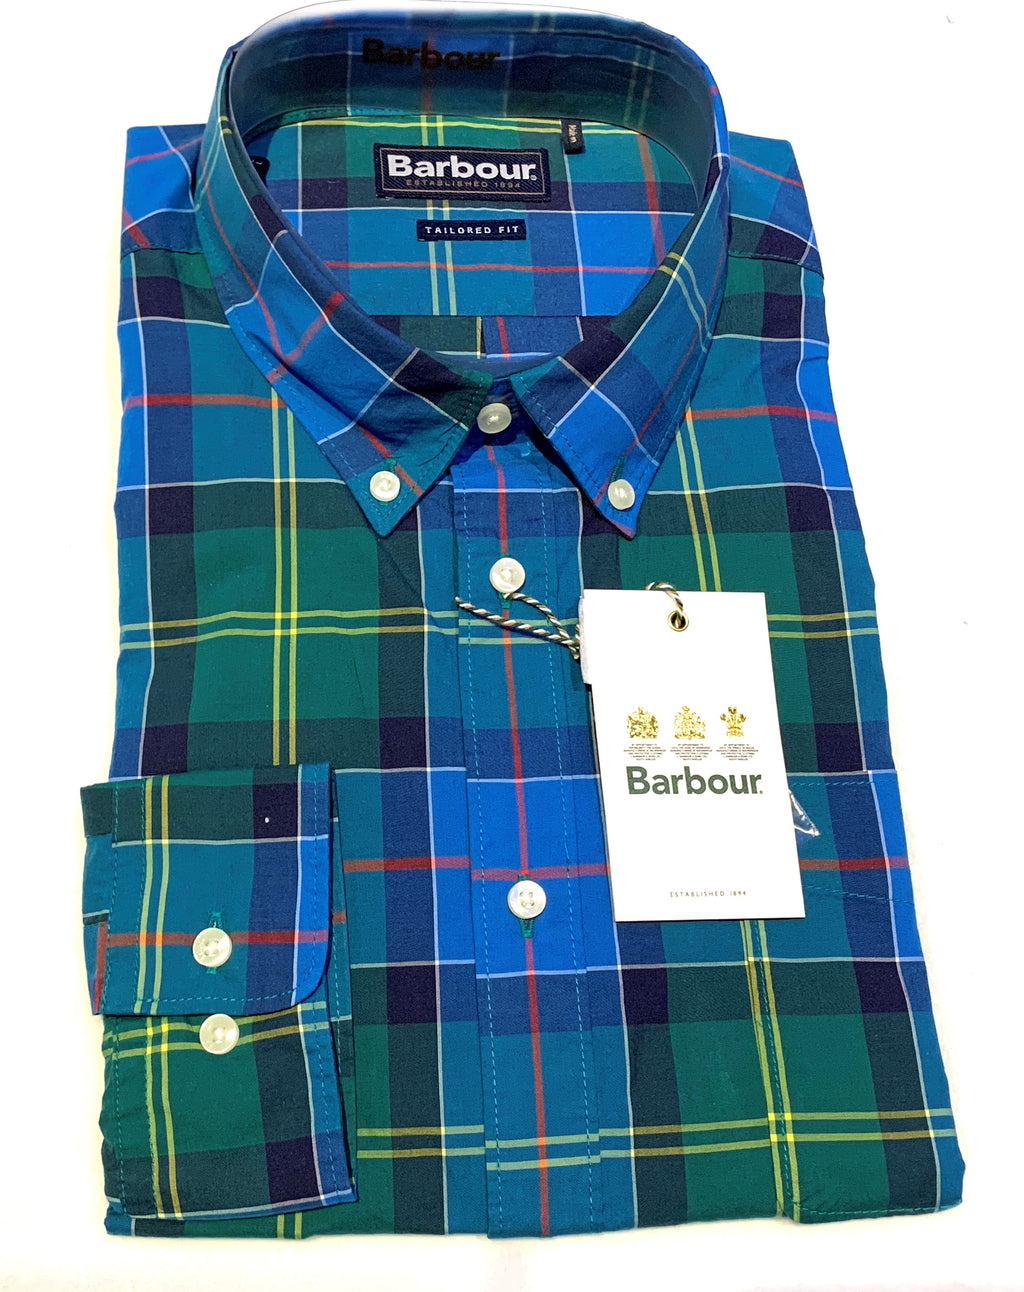 Barbour Blue and Green Tartan Plaid Summer Sport Shirt